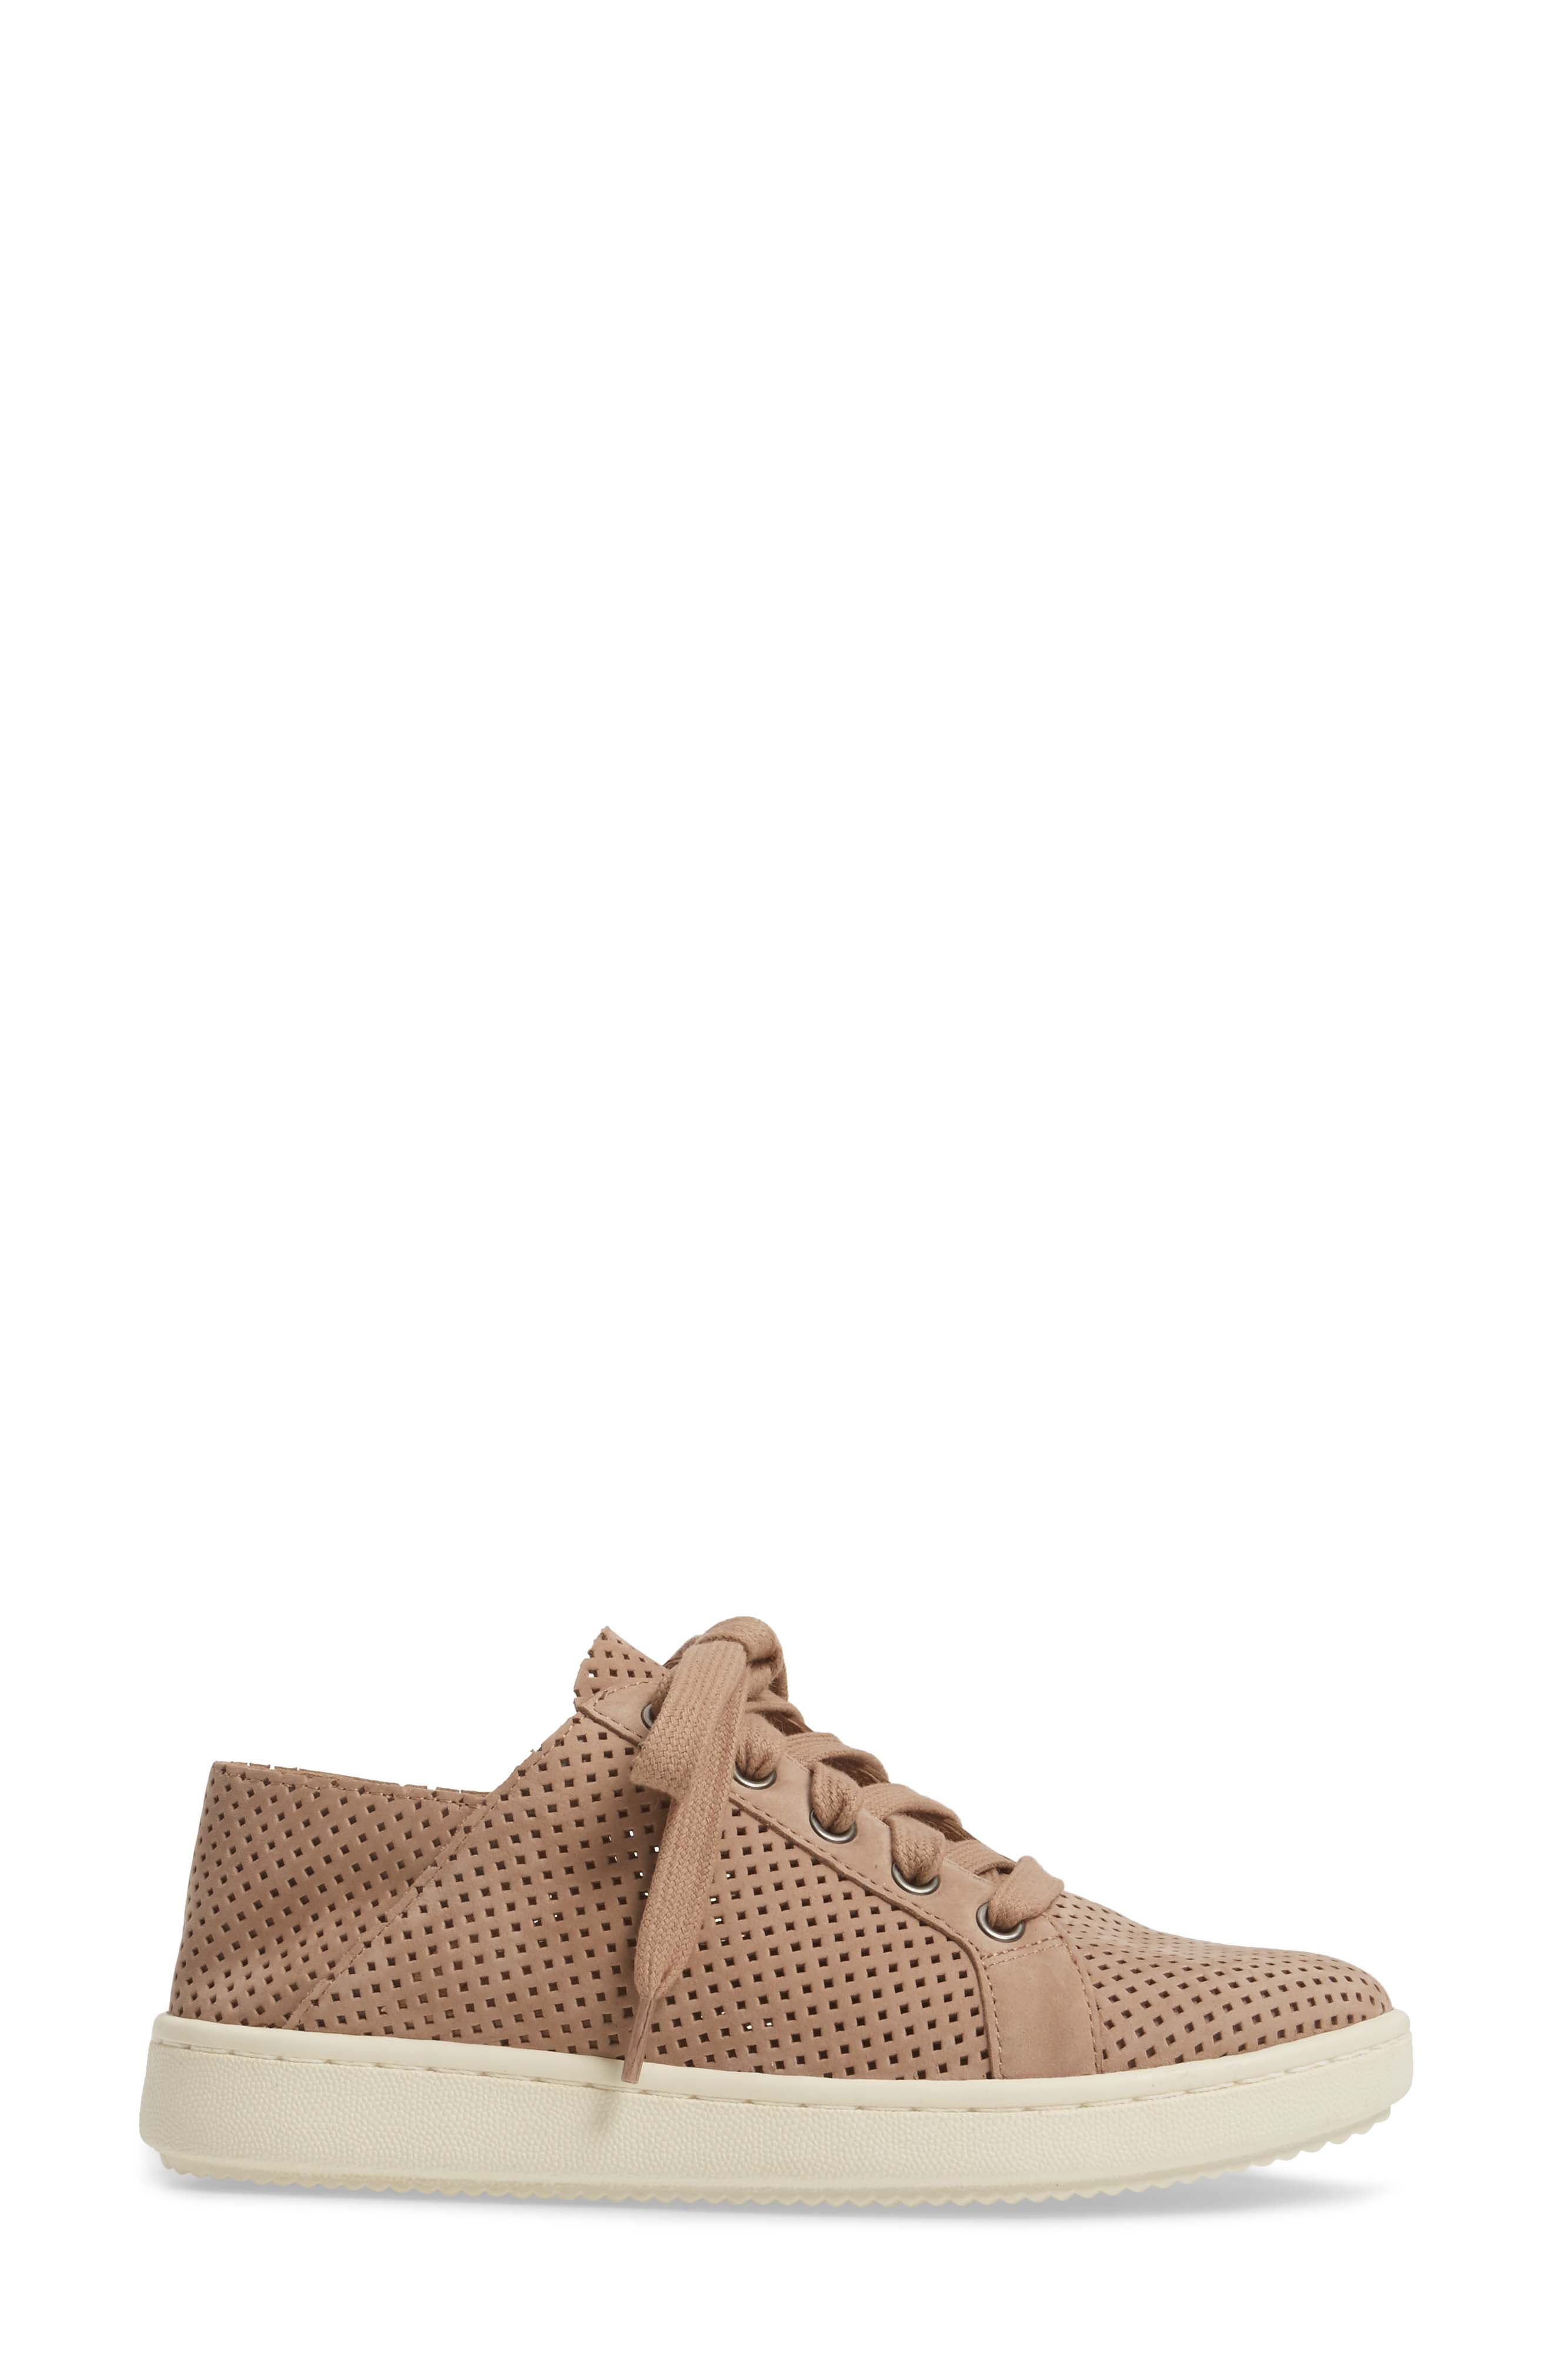 Clifton Perforated Sneaker,                             Alternate thumbnail 3, color,                             250